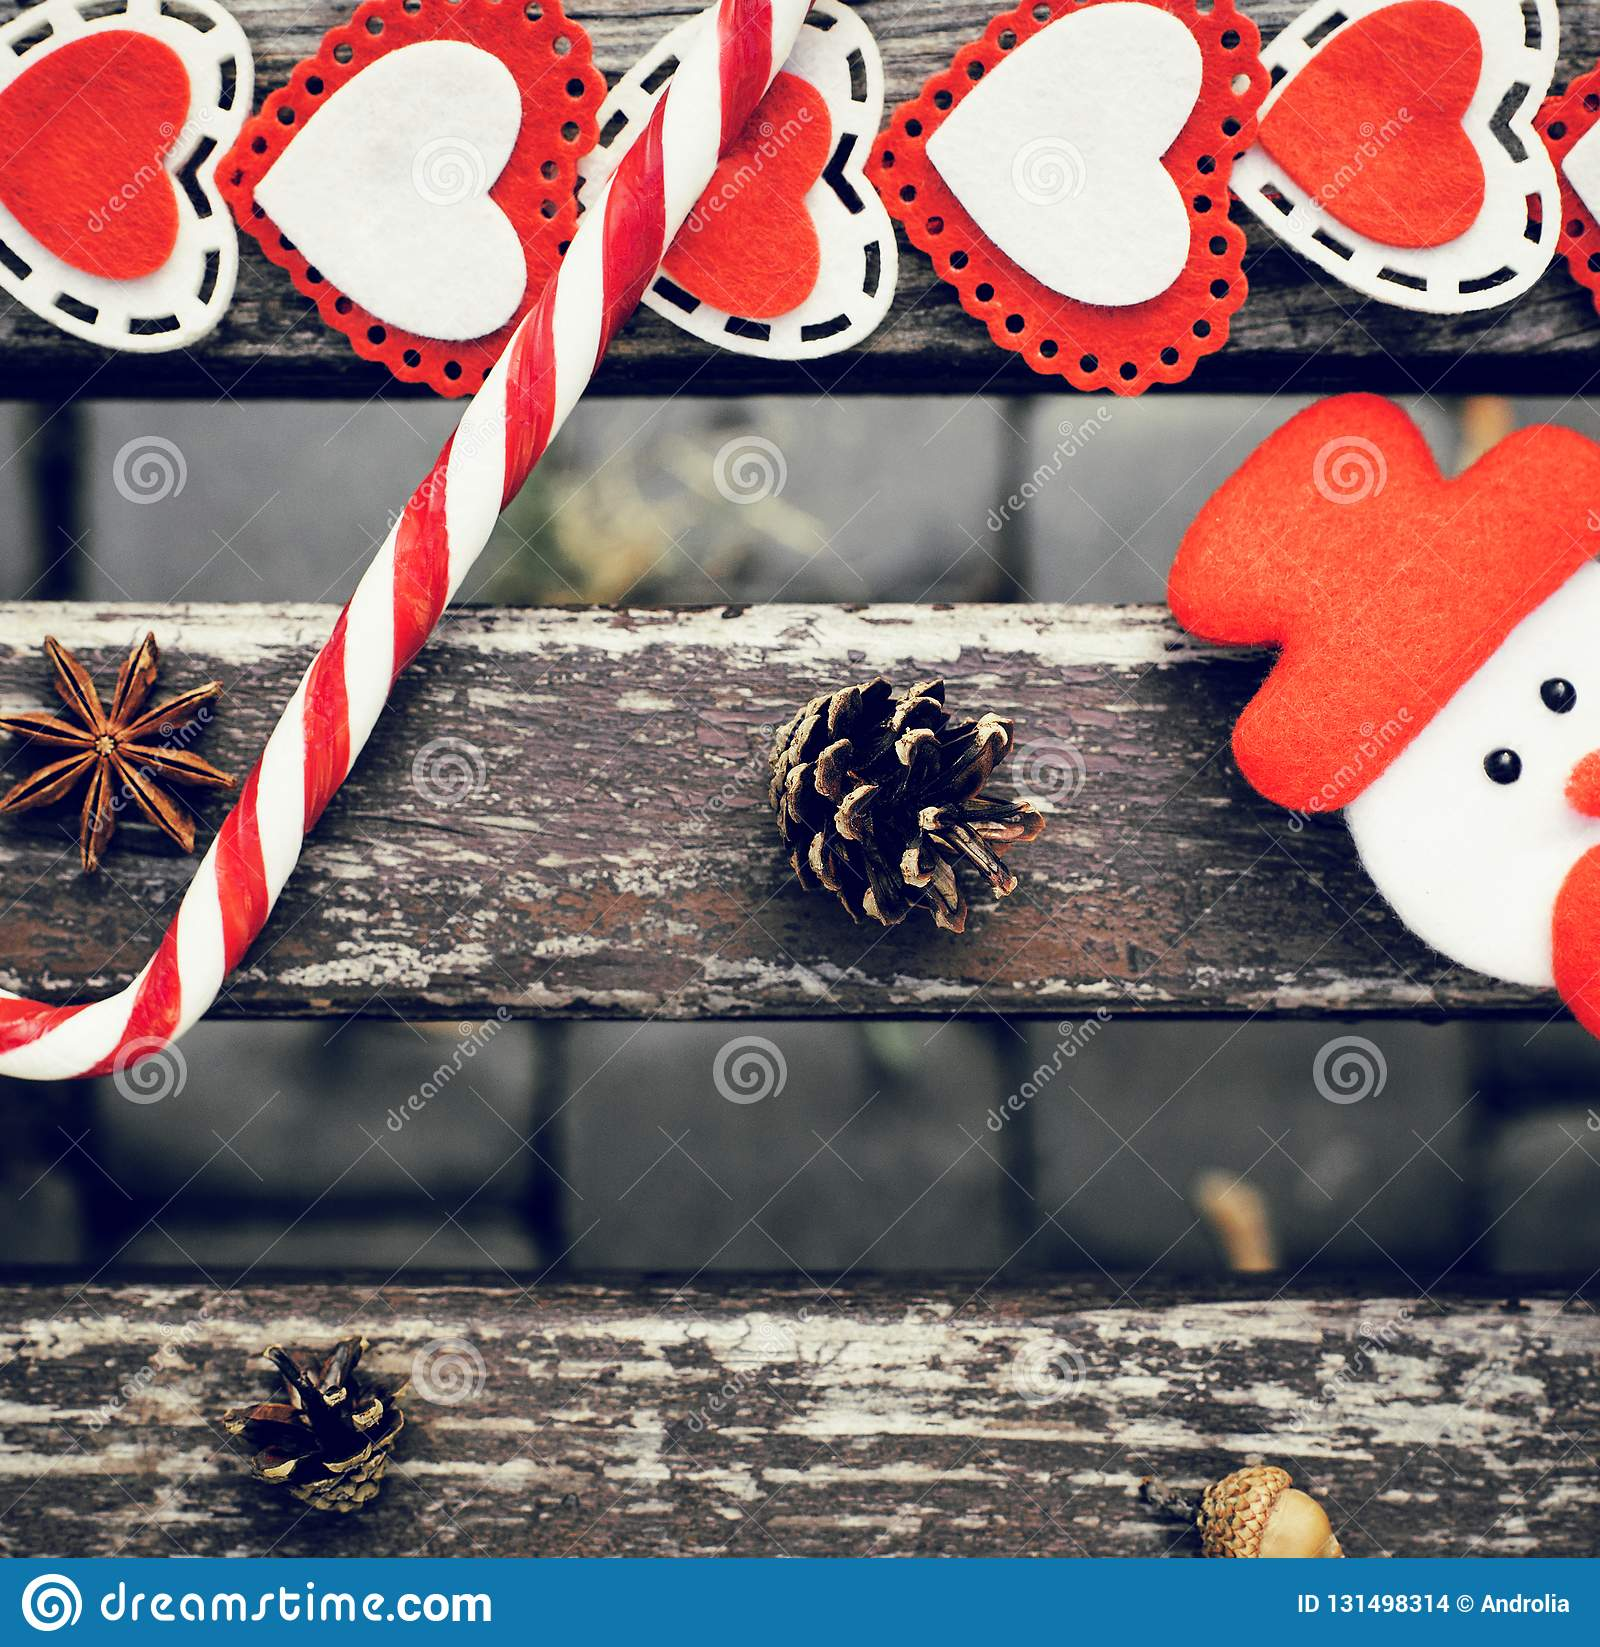 Funny outdoor Christmas composition with pine cones, lollipop, acorn, star anise, snowman and colorful felt hearts on an old